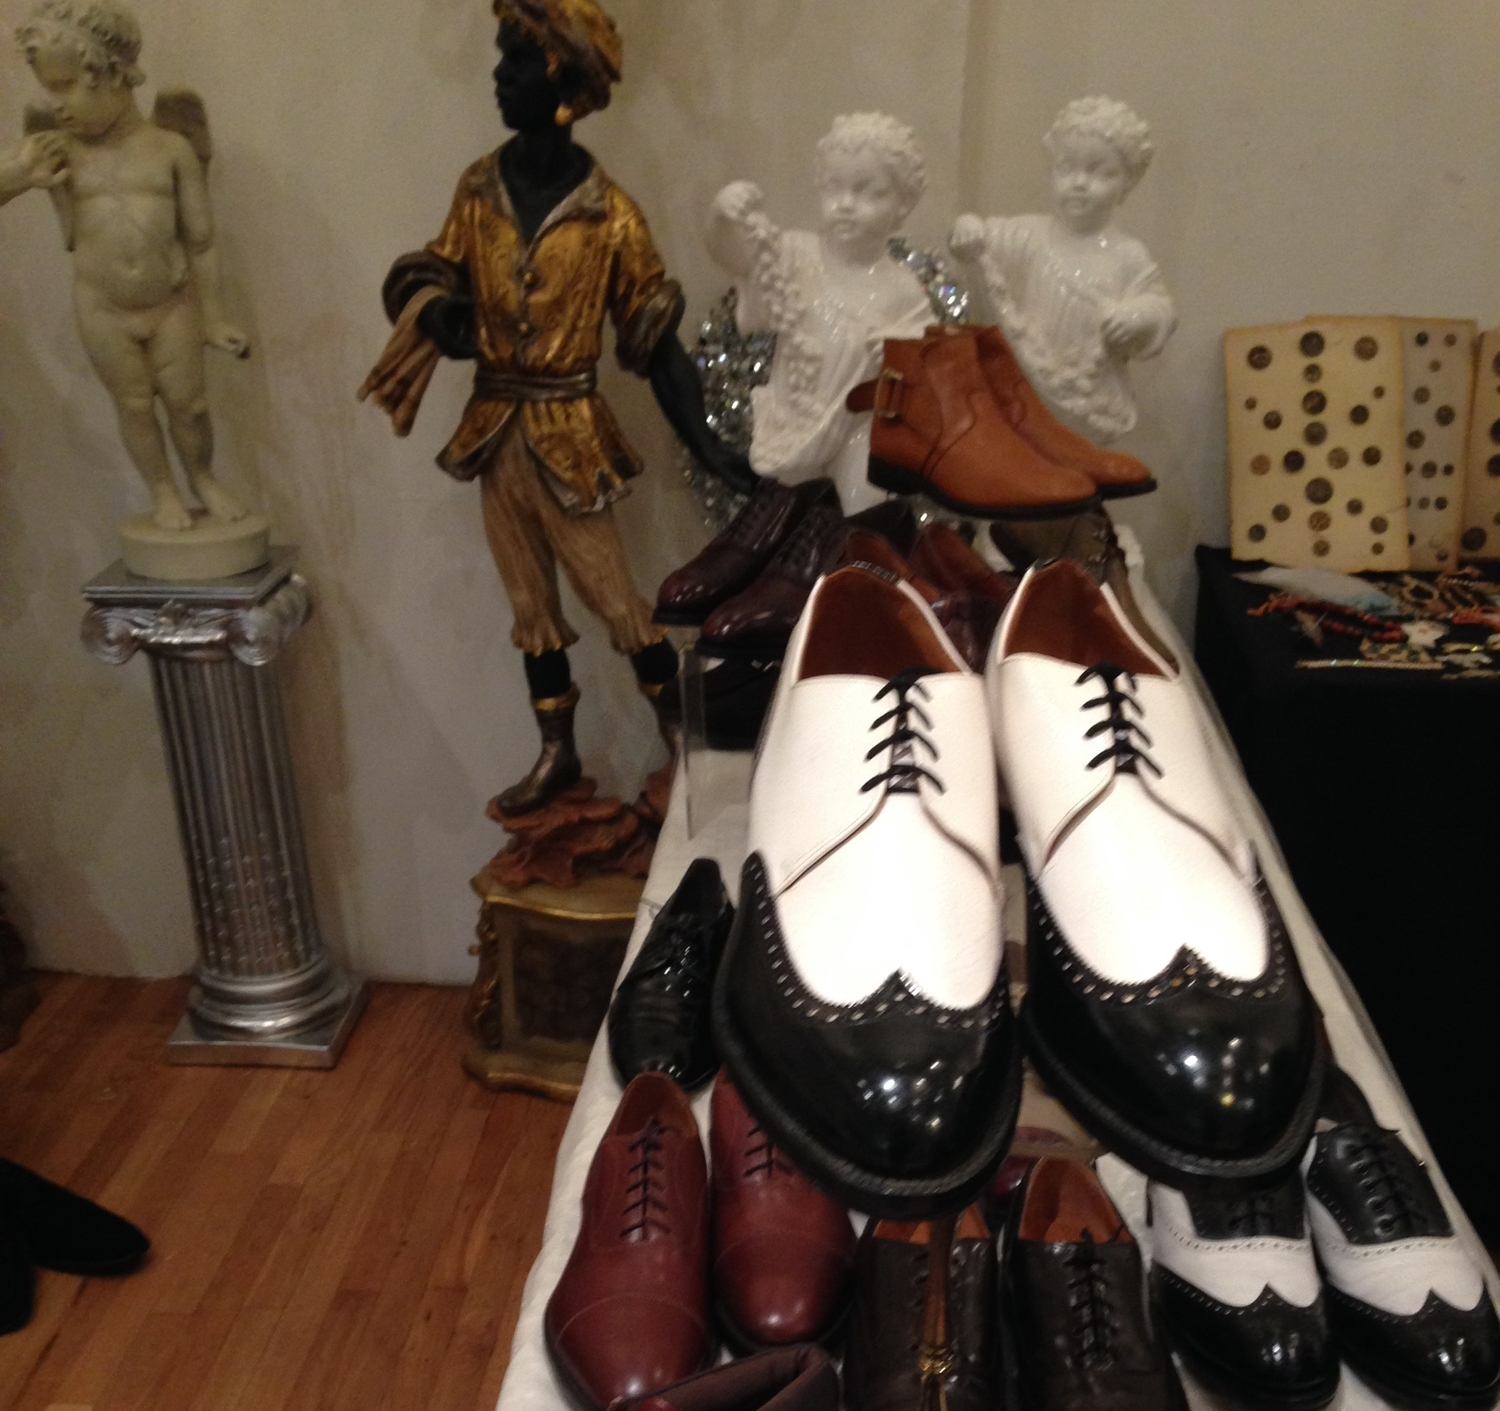 Men's vintage shoes from Ramone